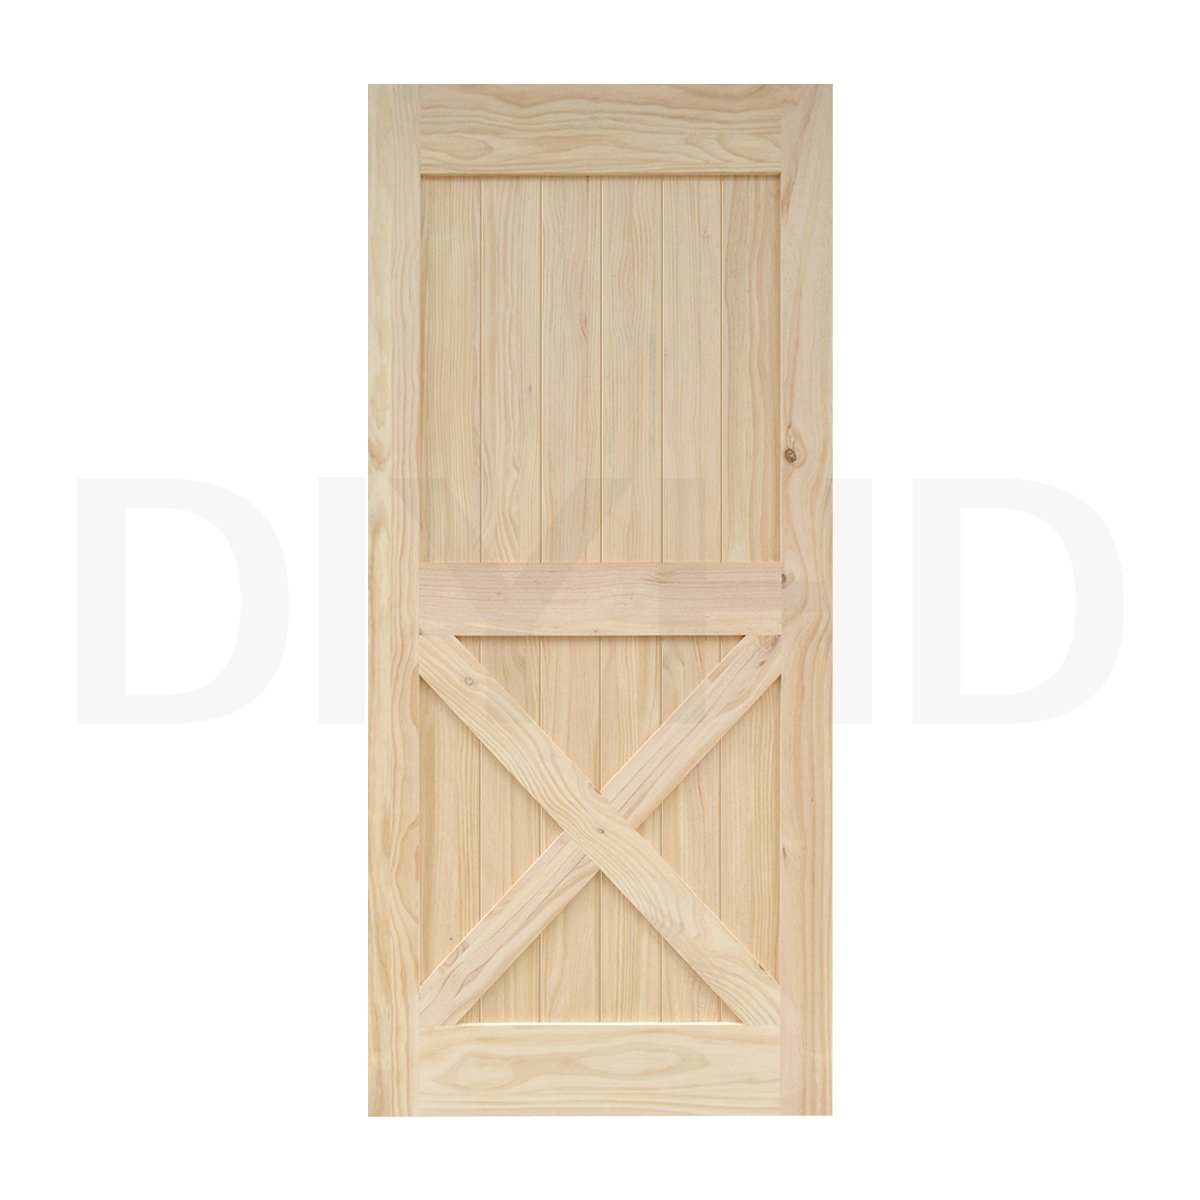 Elegant 38 In84 In Pine Knotty Sliding Barn Wood Door Slab Two Side X Shape Barn